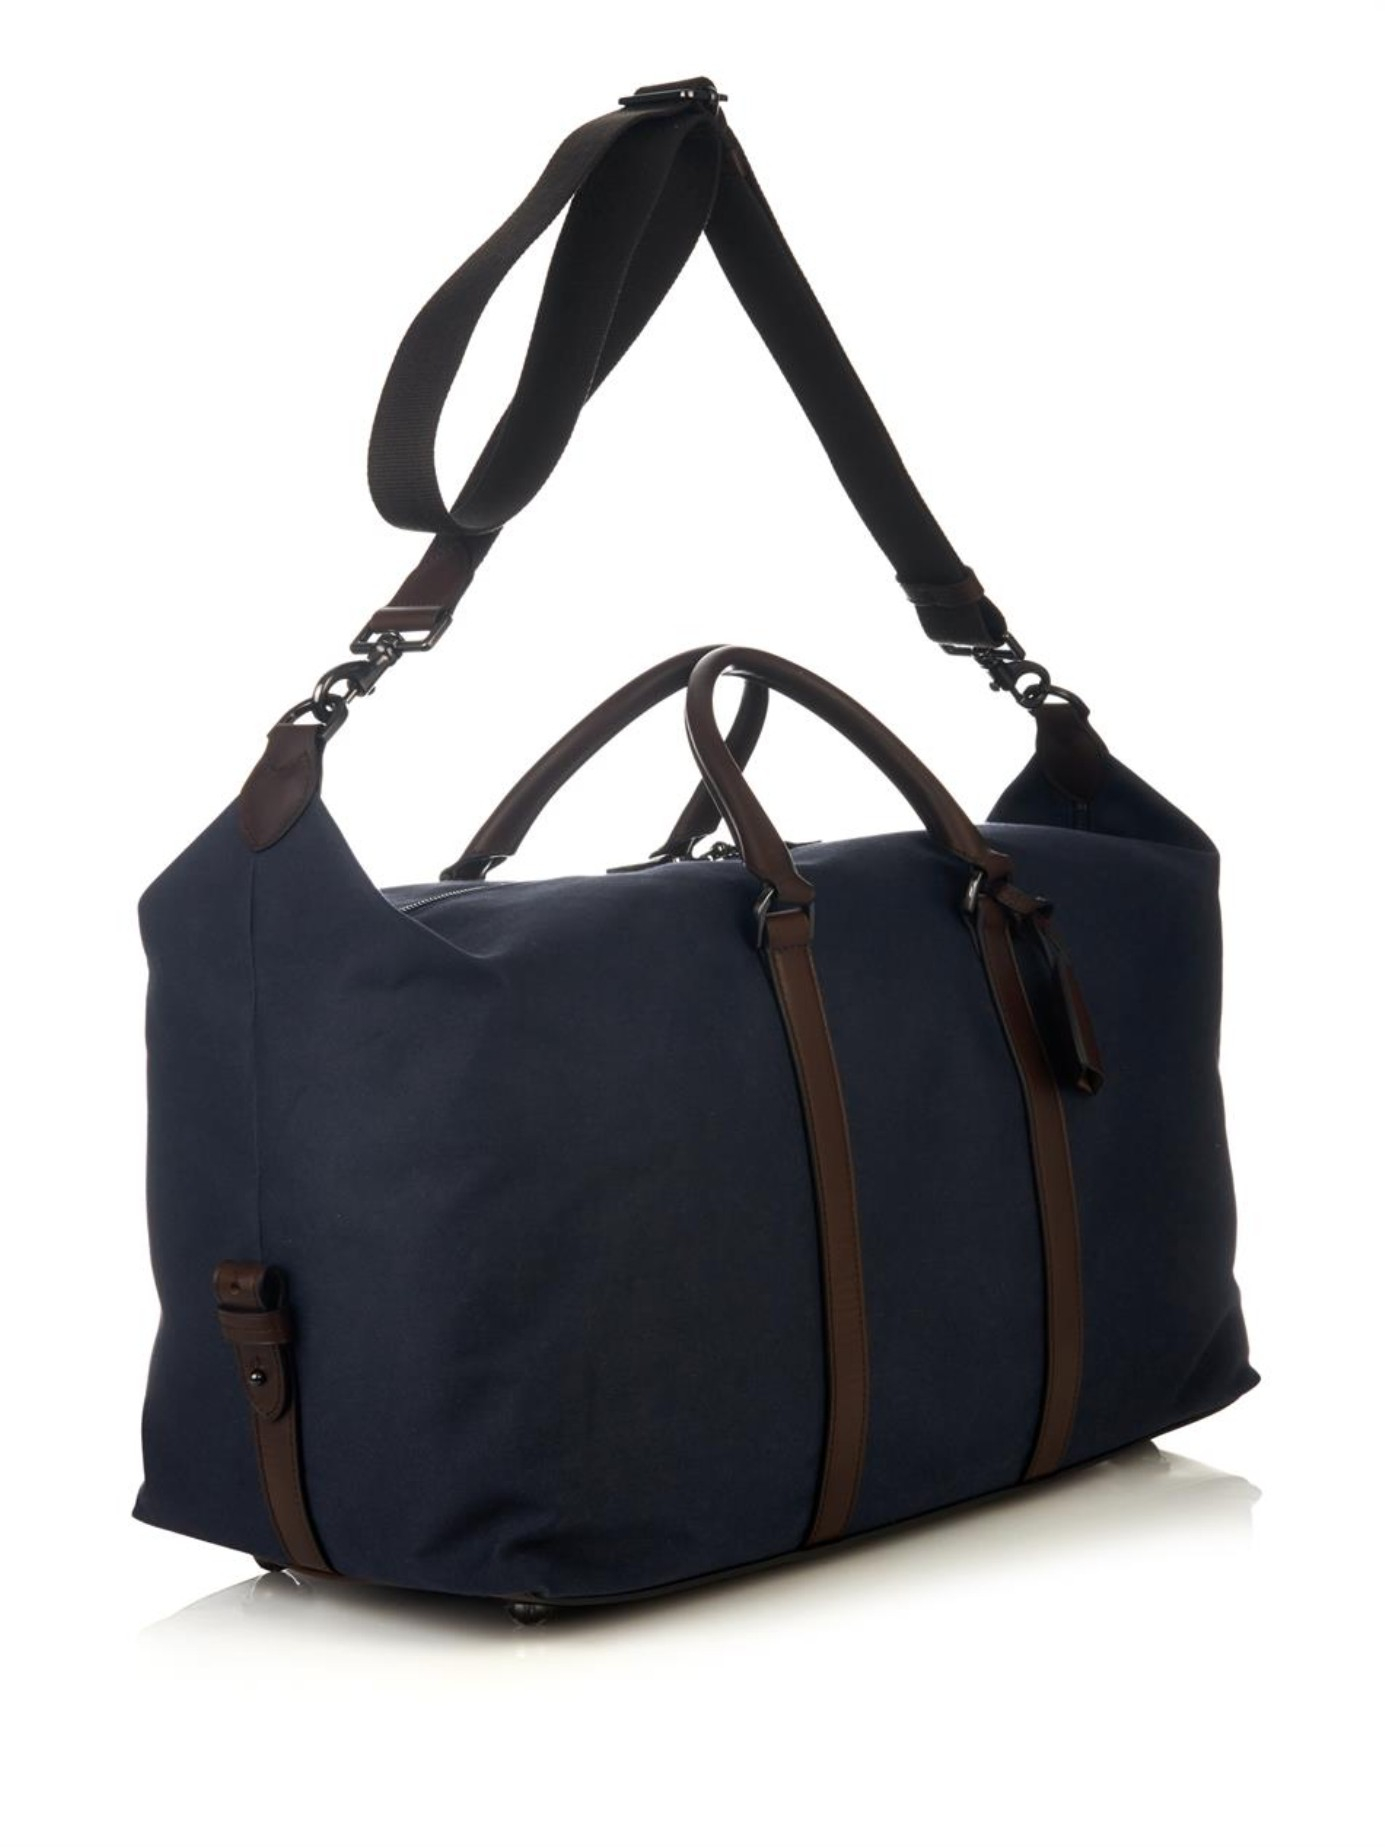 2545f060133 australia Äkta mulberry clipper weekend bag st m. stockholm 9f8a1 bf9df   amazon lyst mulberry clipper refined canvas weekend bag in blue for men  c56b2 62561